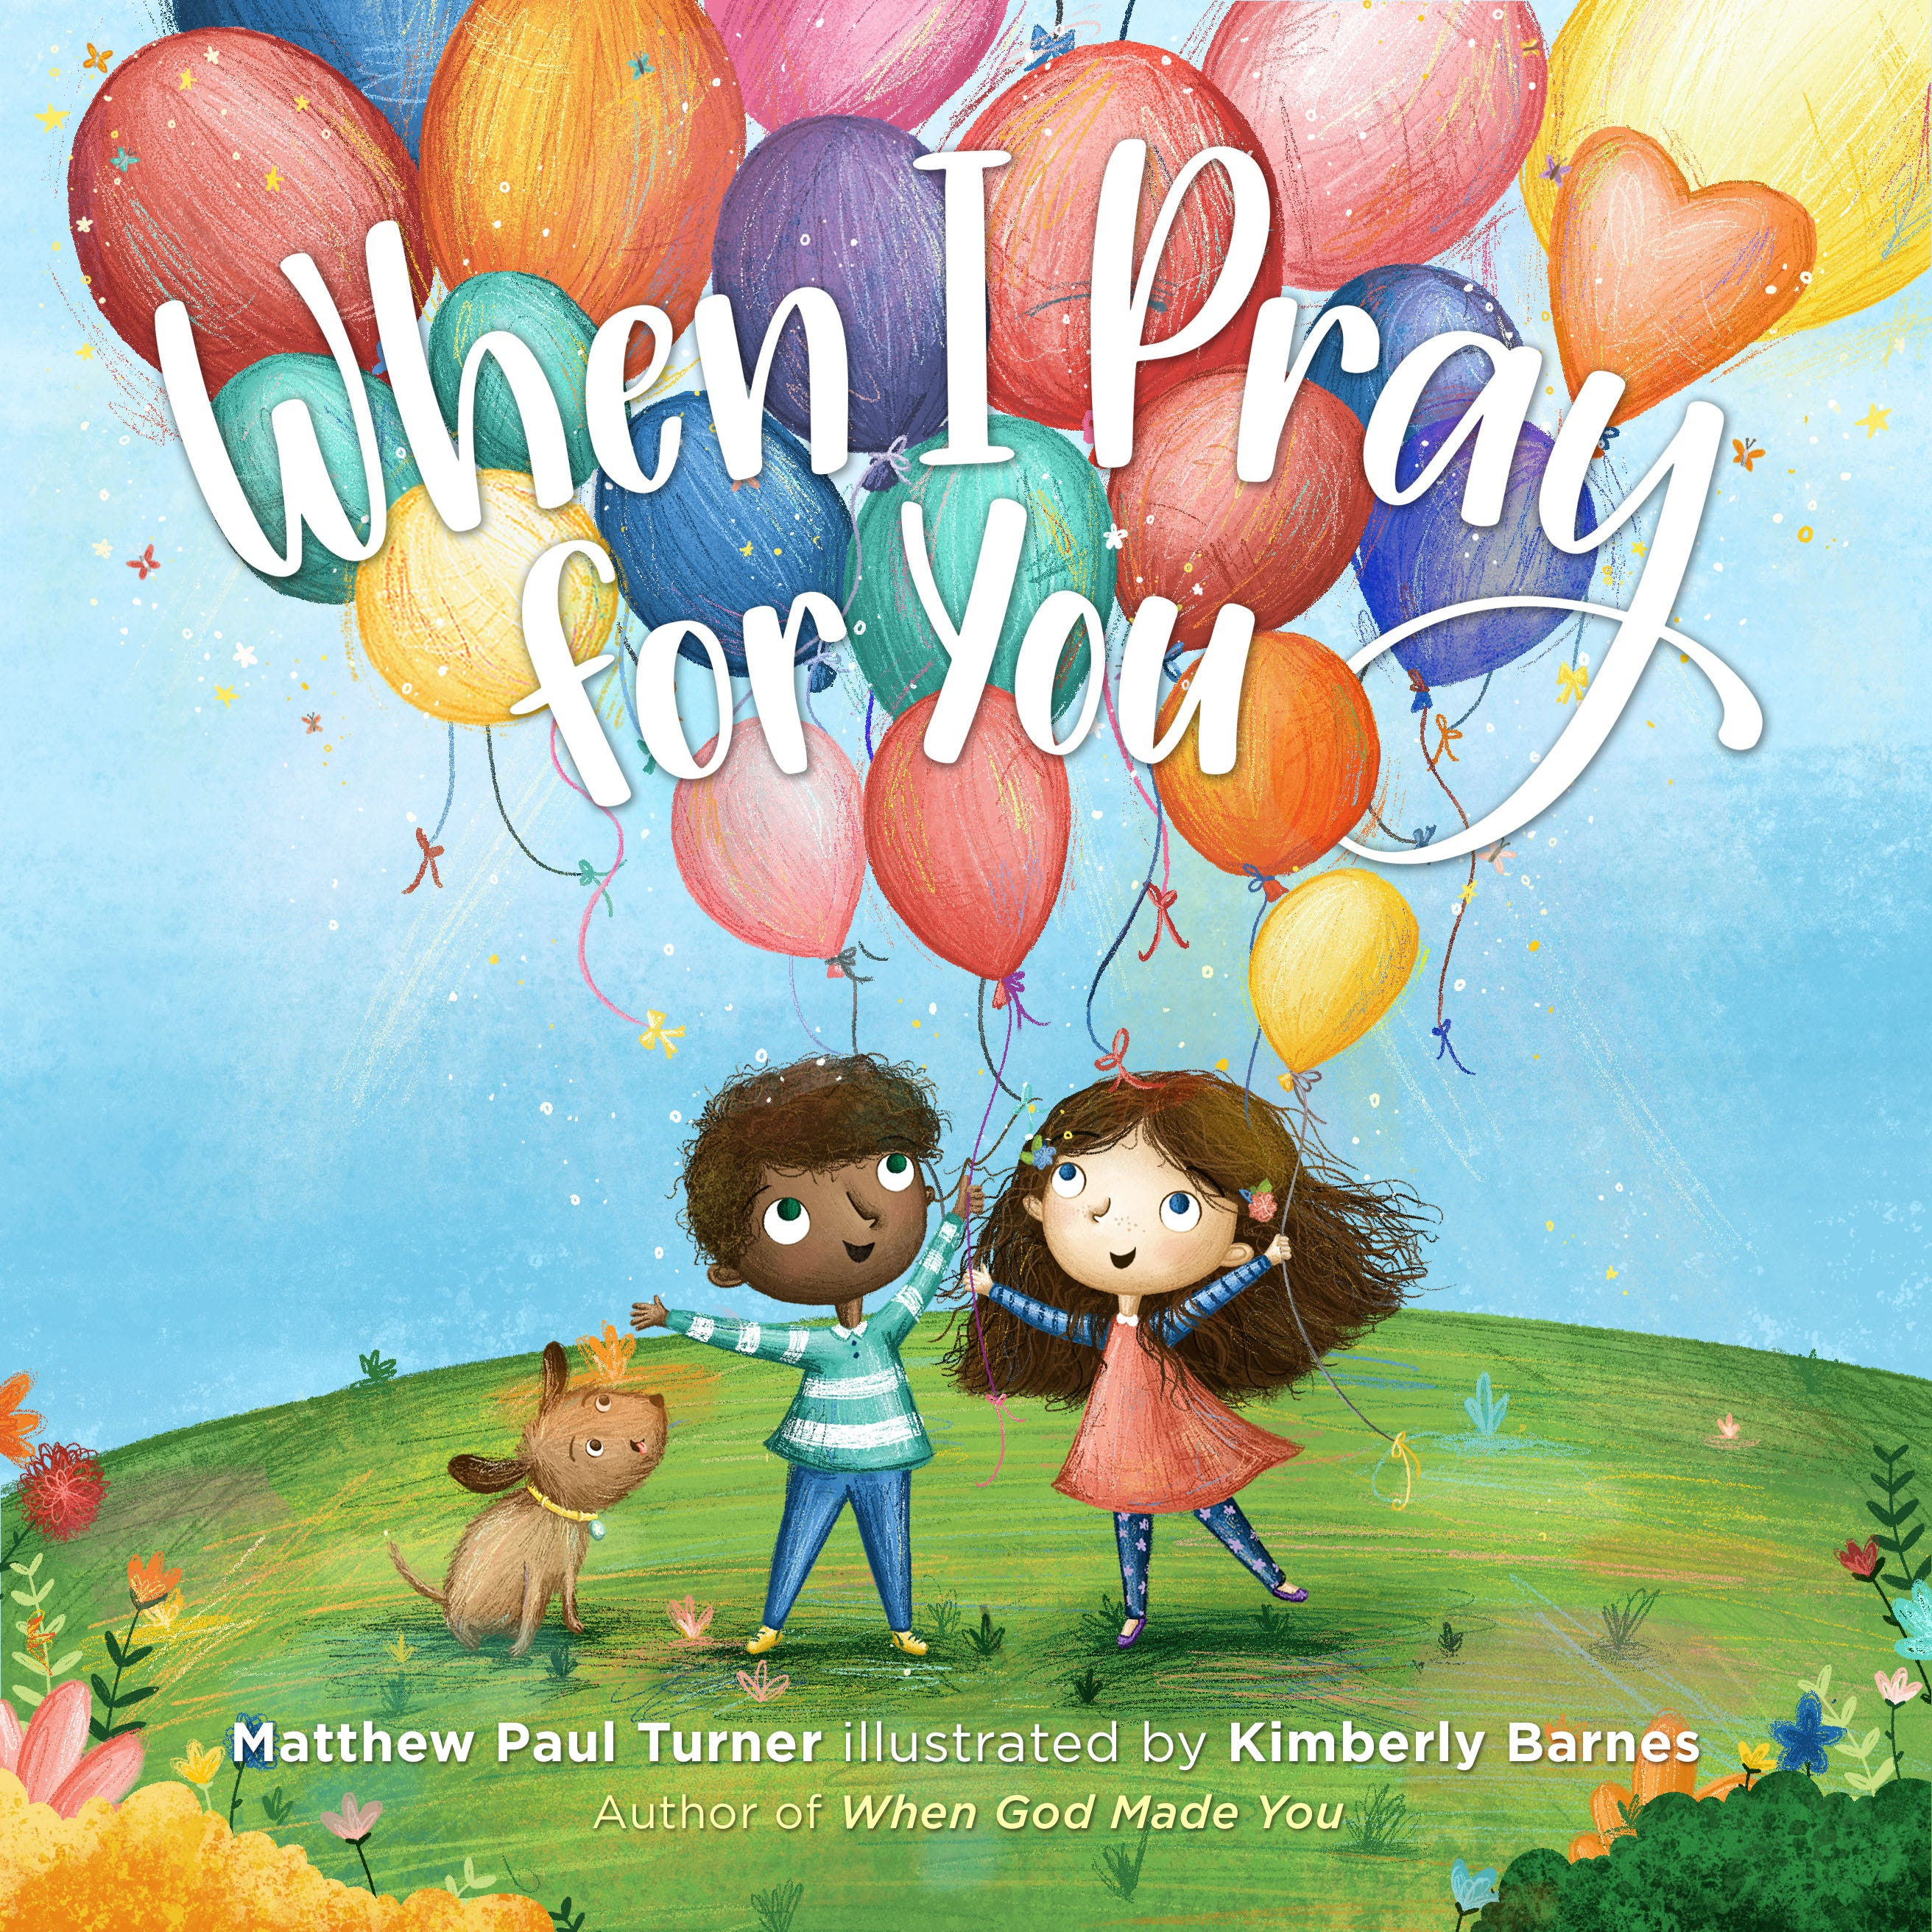 Amy Grant voices children's book video trailer — and it gets 1 million views in two weeks